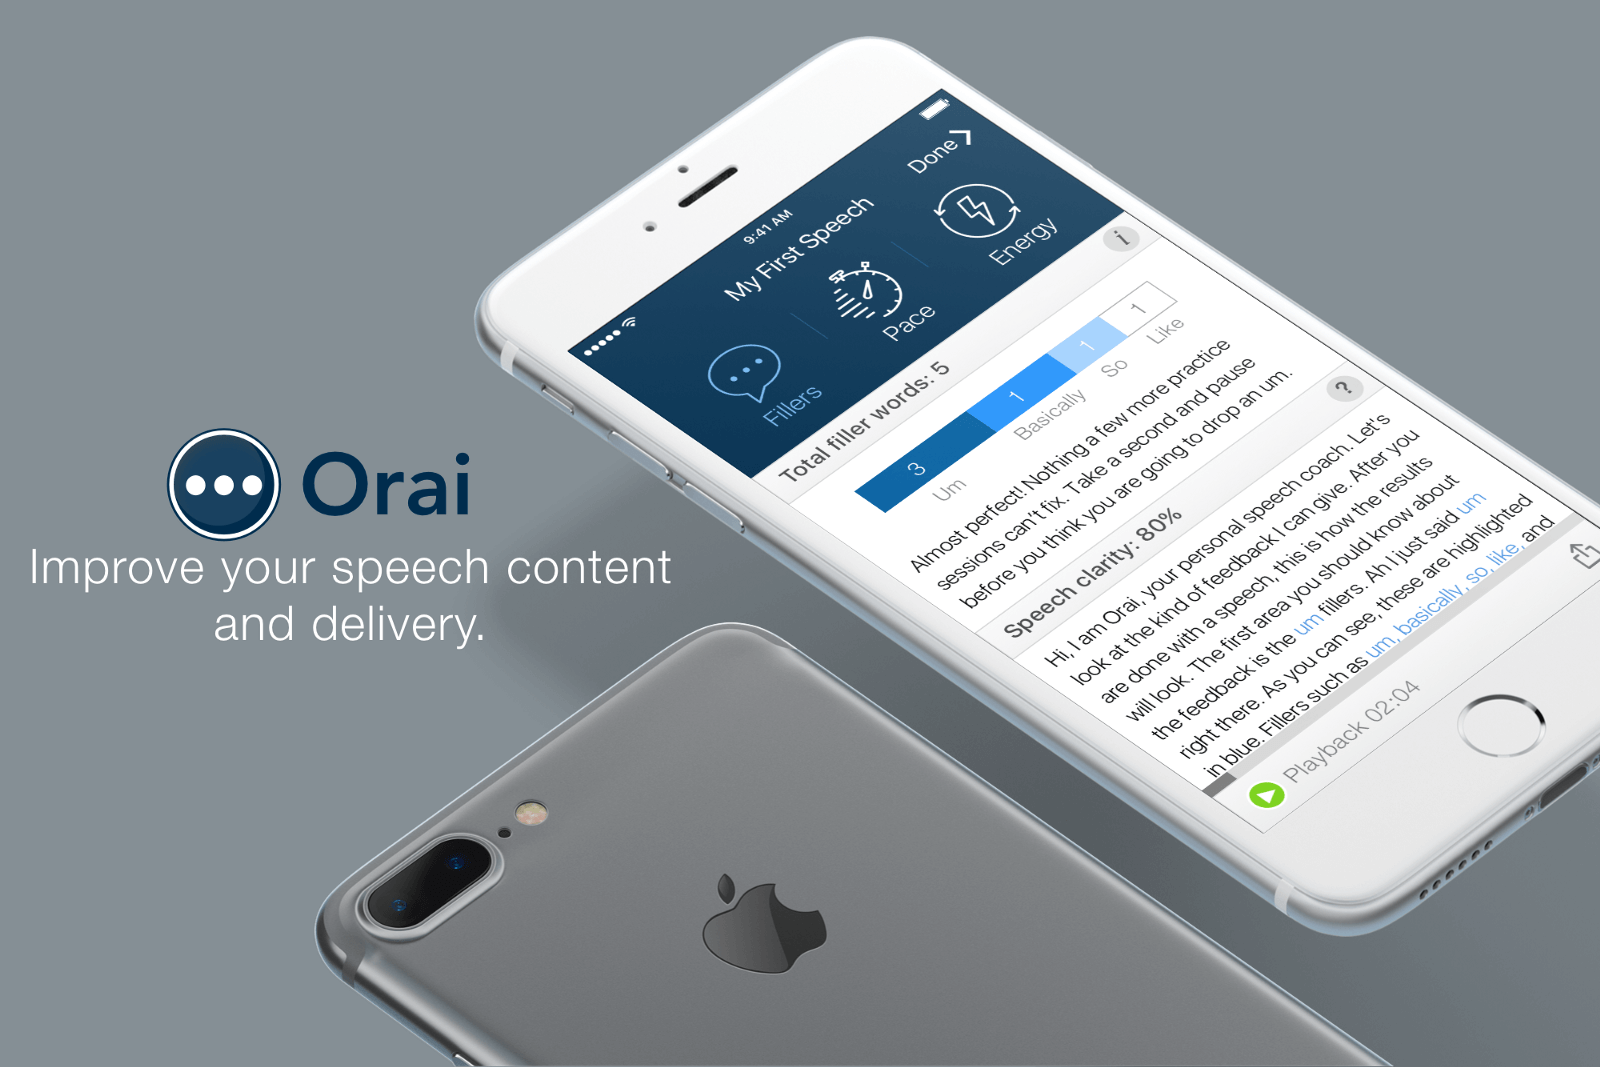 Orai - Improve your speech content and delivery